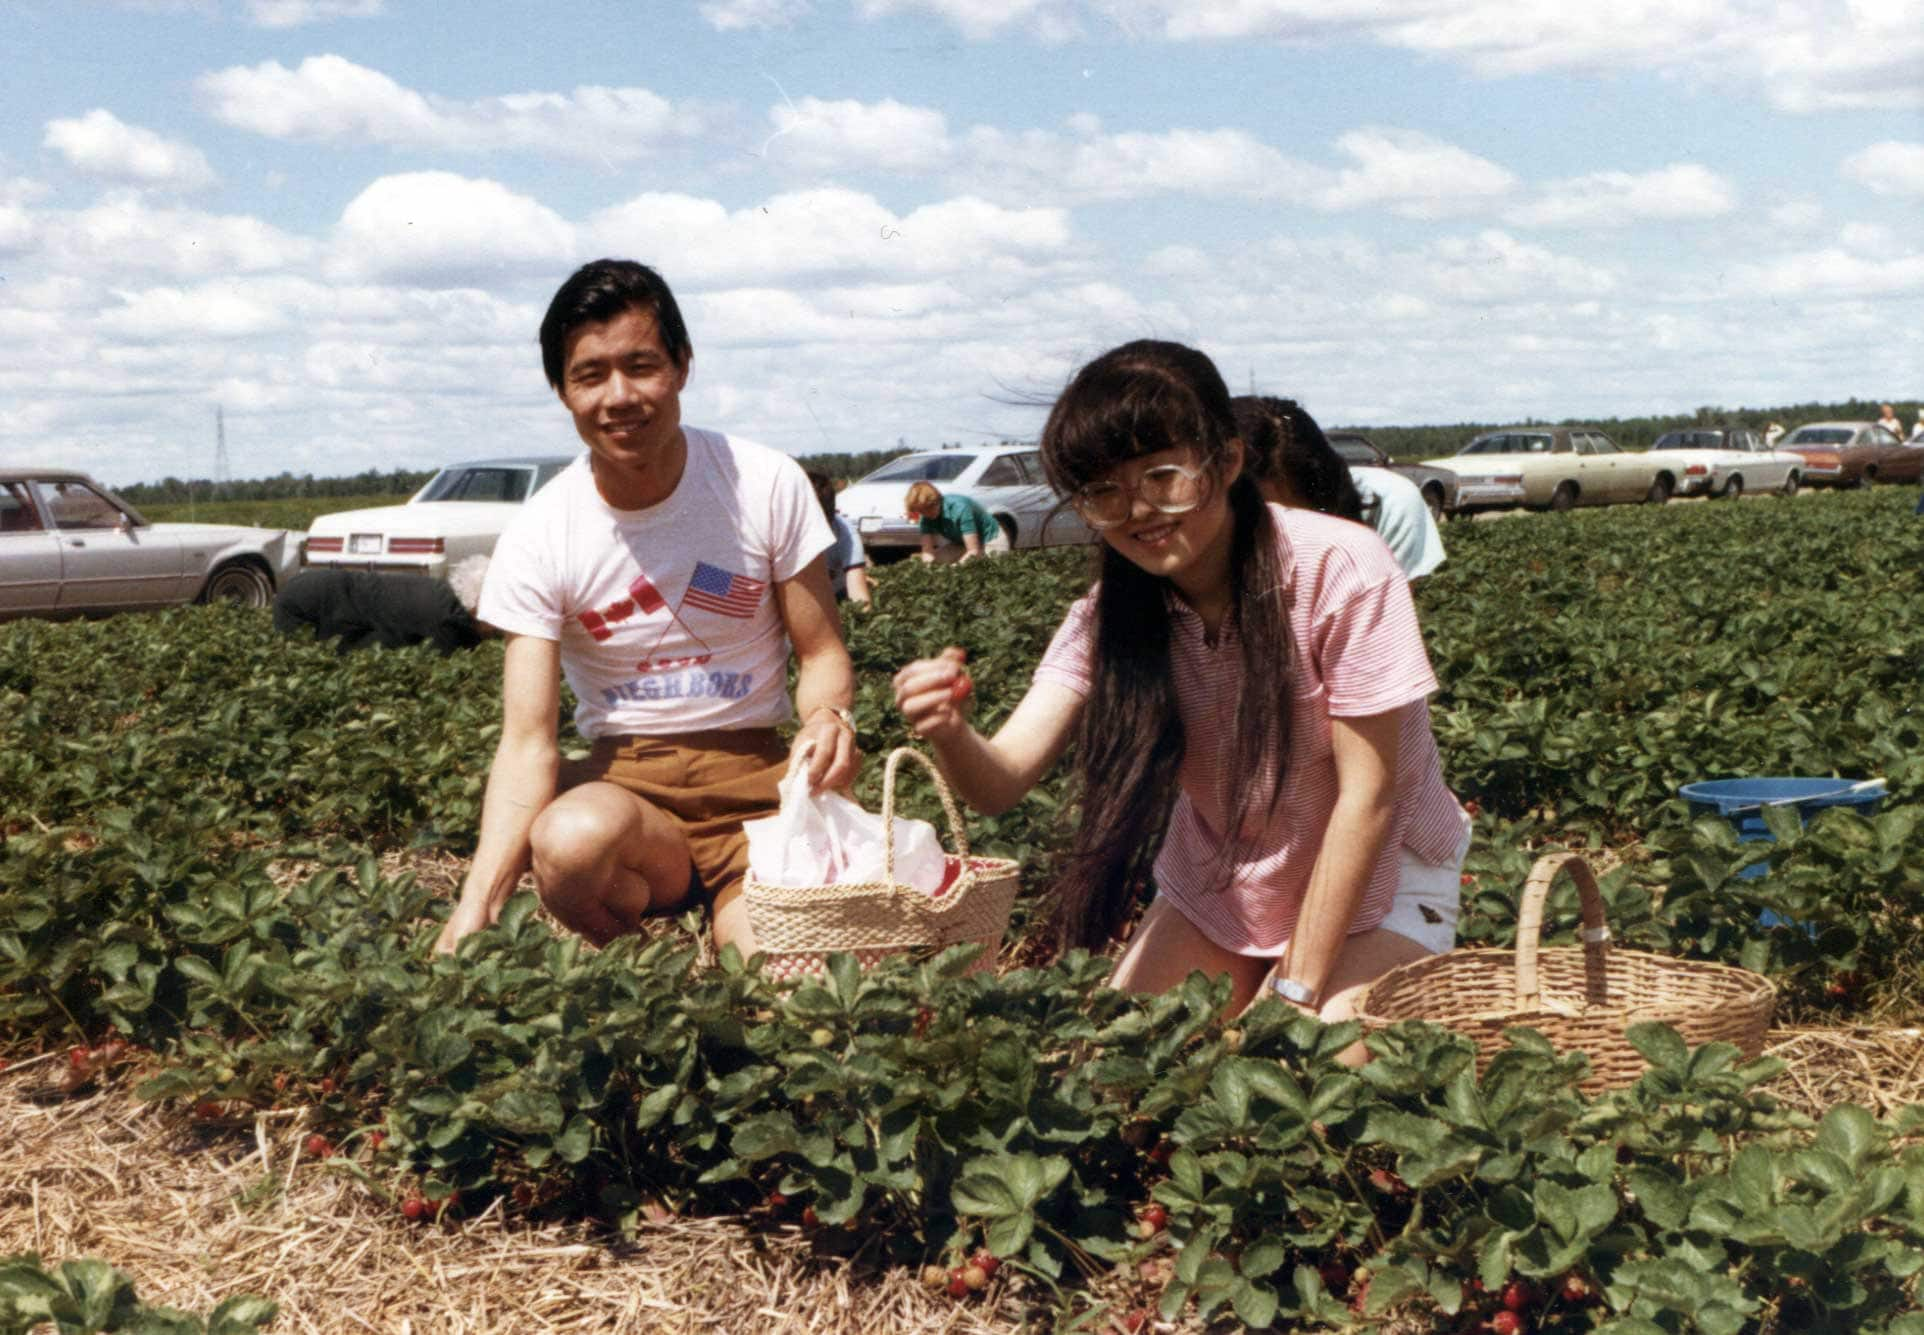 A couple sitting in a field picking strawberries